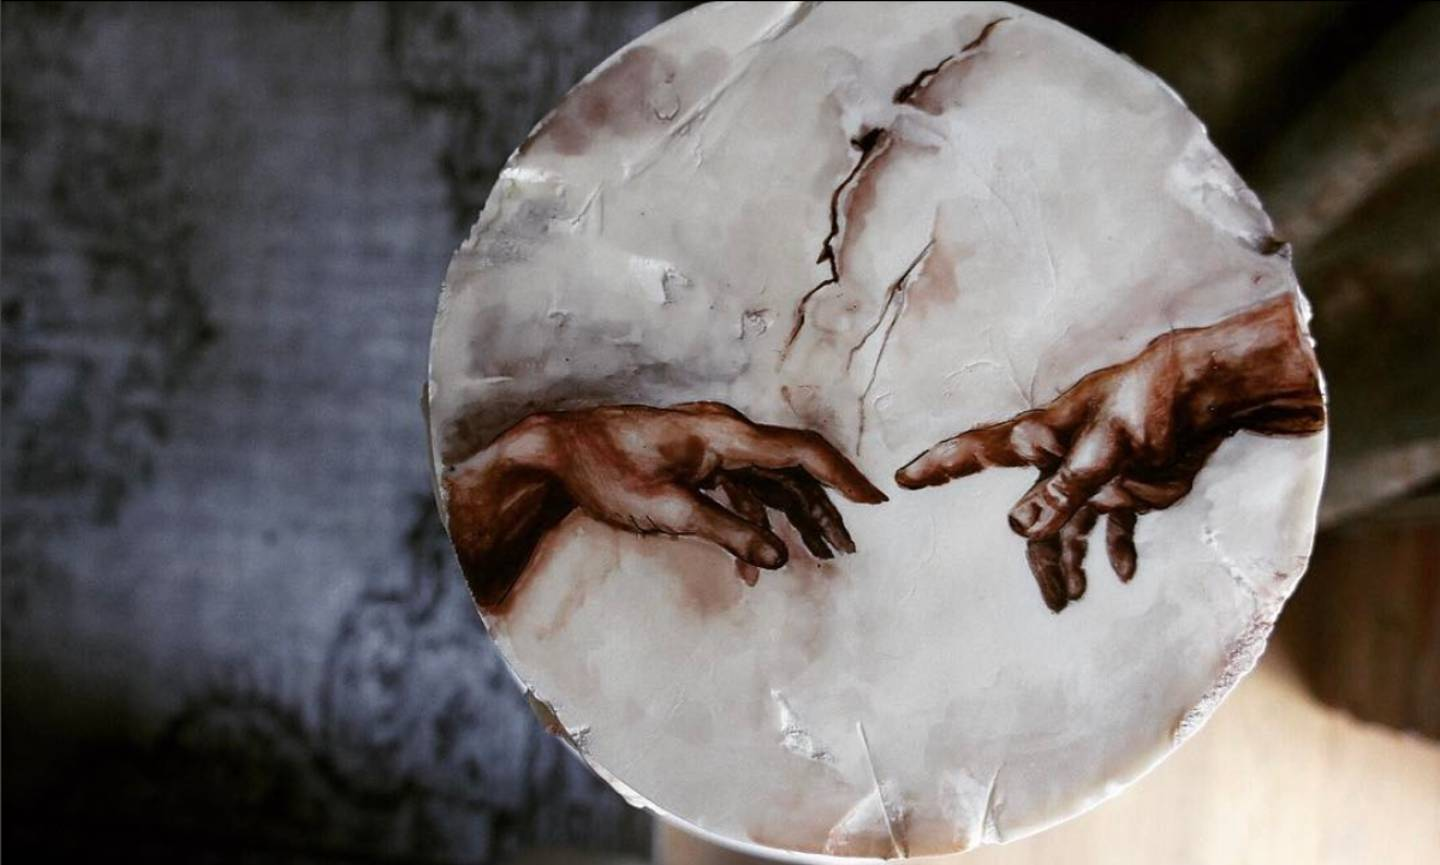 The Creation of Adam painting by Michelangelo